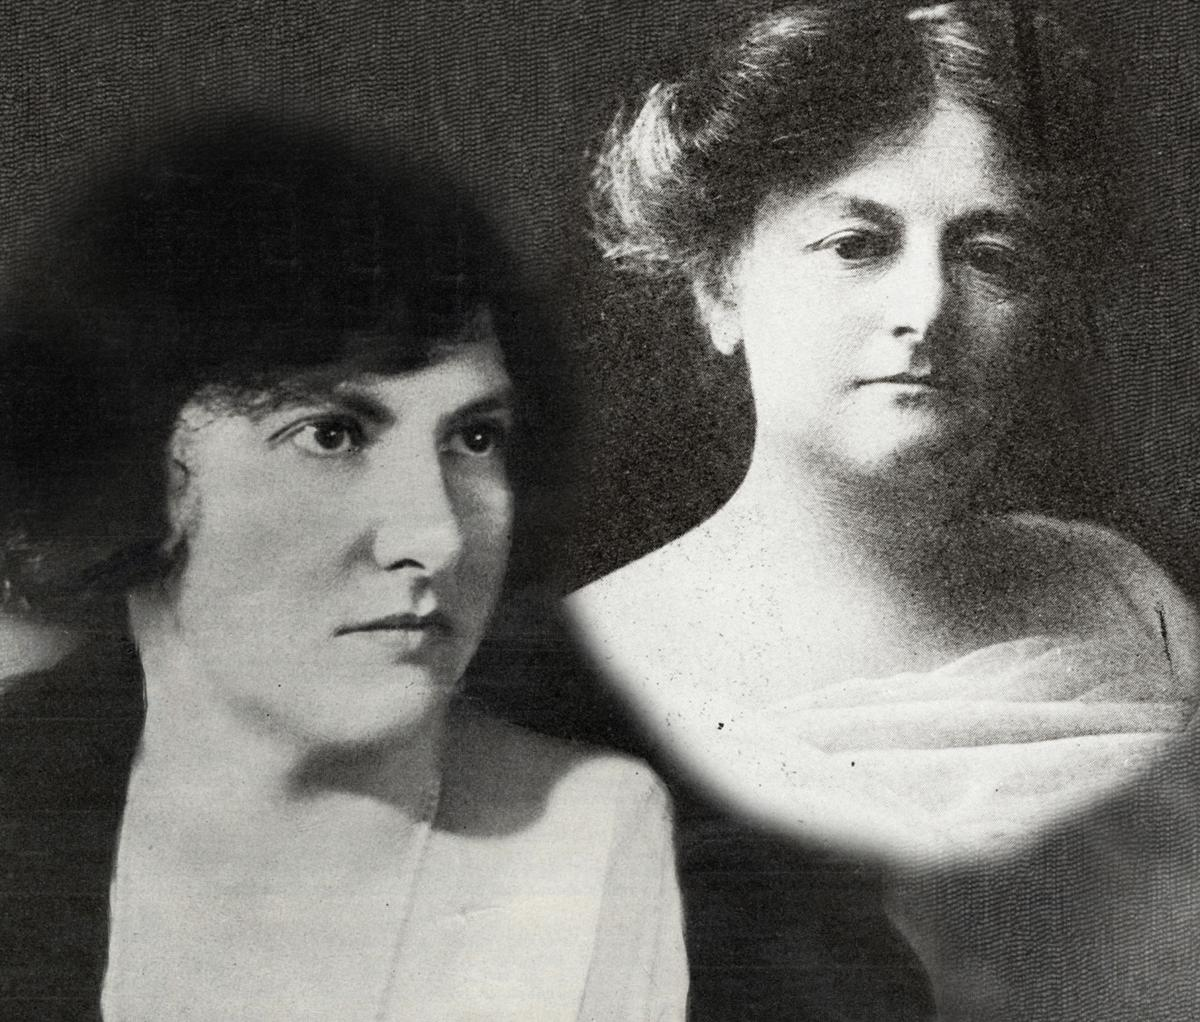 Marion and Emilie Bauer